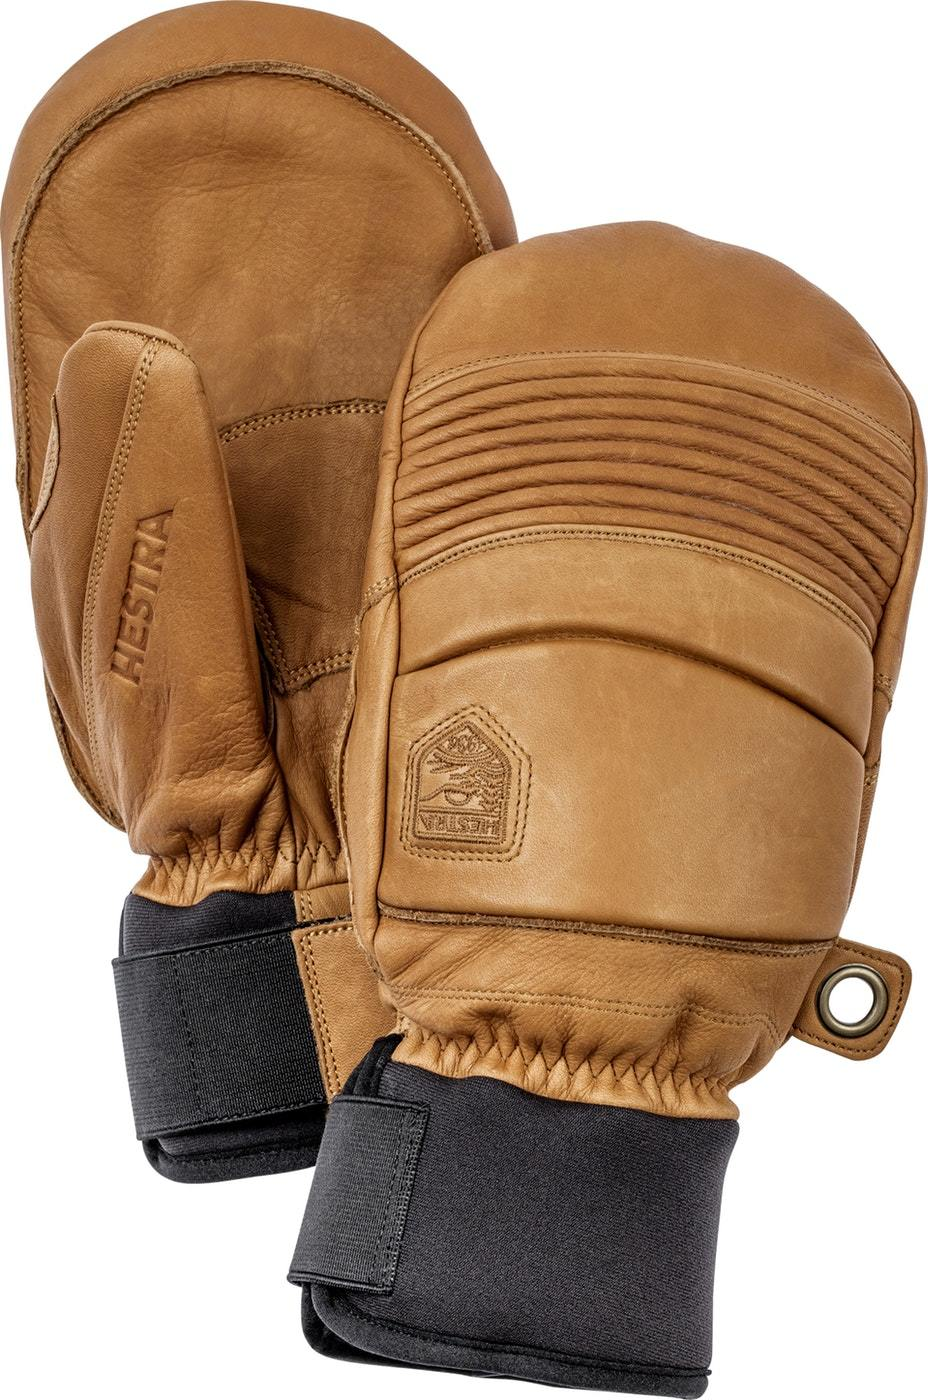 Leather Fall LIne Mitt - 31471-710